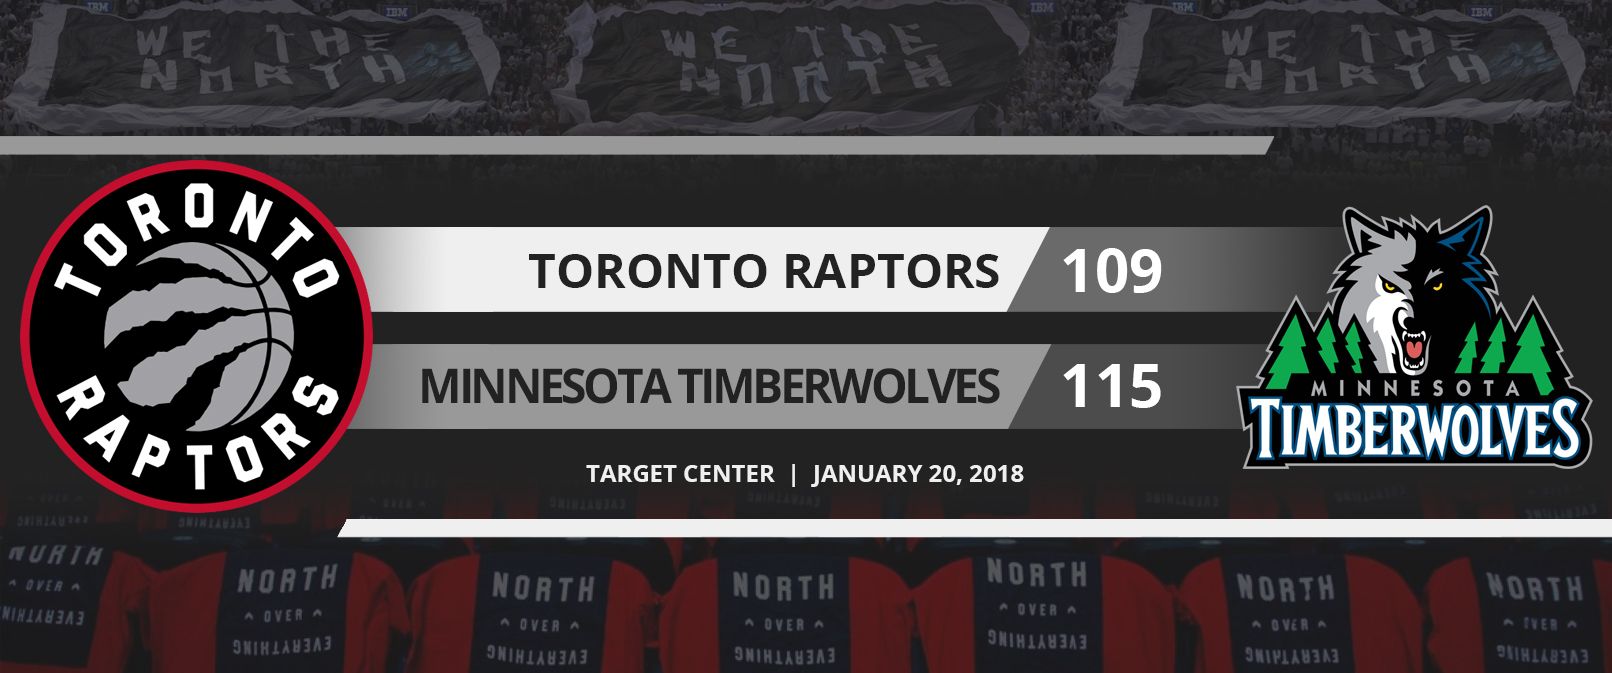 Toronto Raptors at Minnesota Timberwolves, January 20